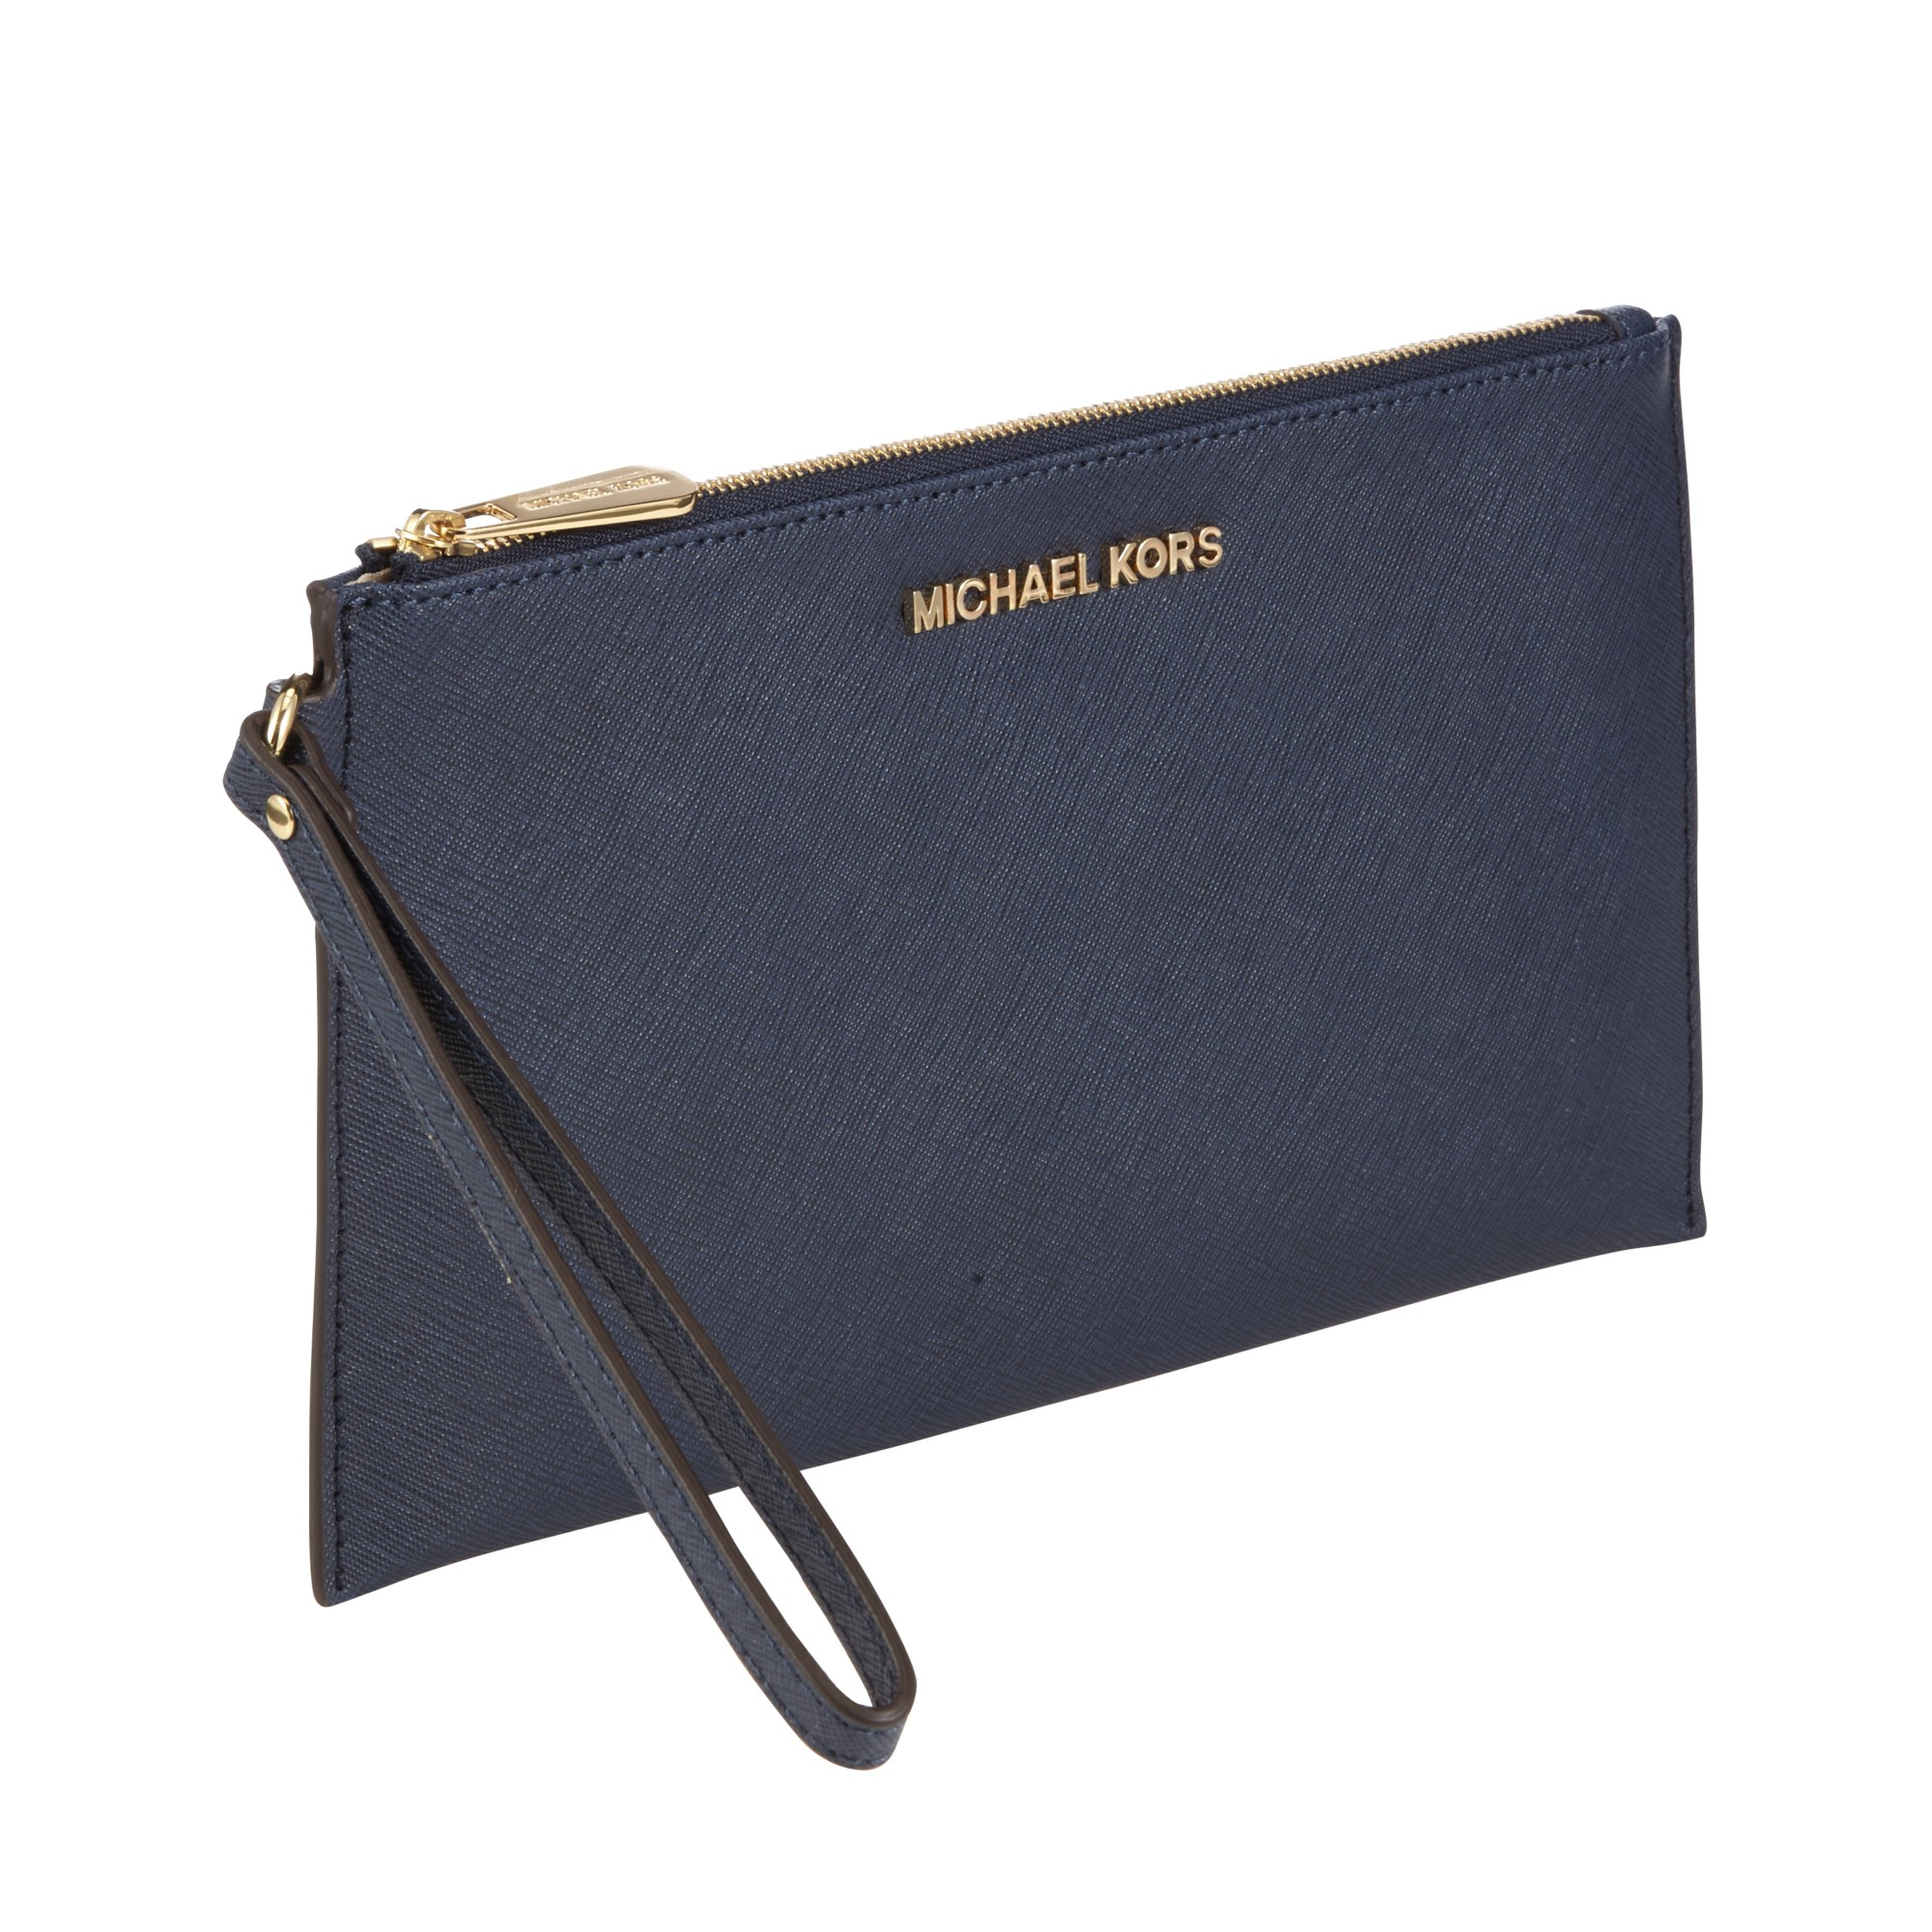 a75f91eb75563f Michael Kors Navy Clutch Bag Uk | Stanford Center for Opportunity ...